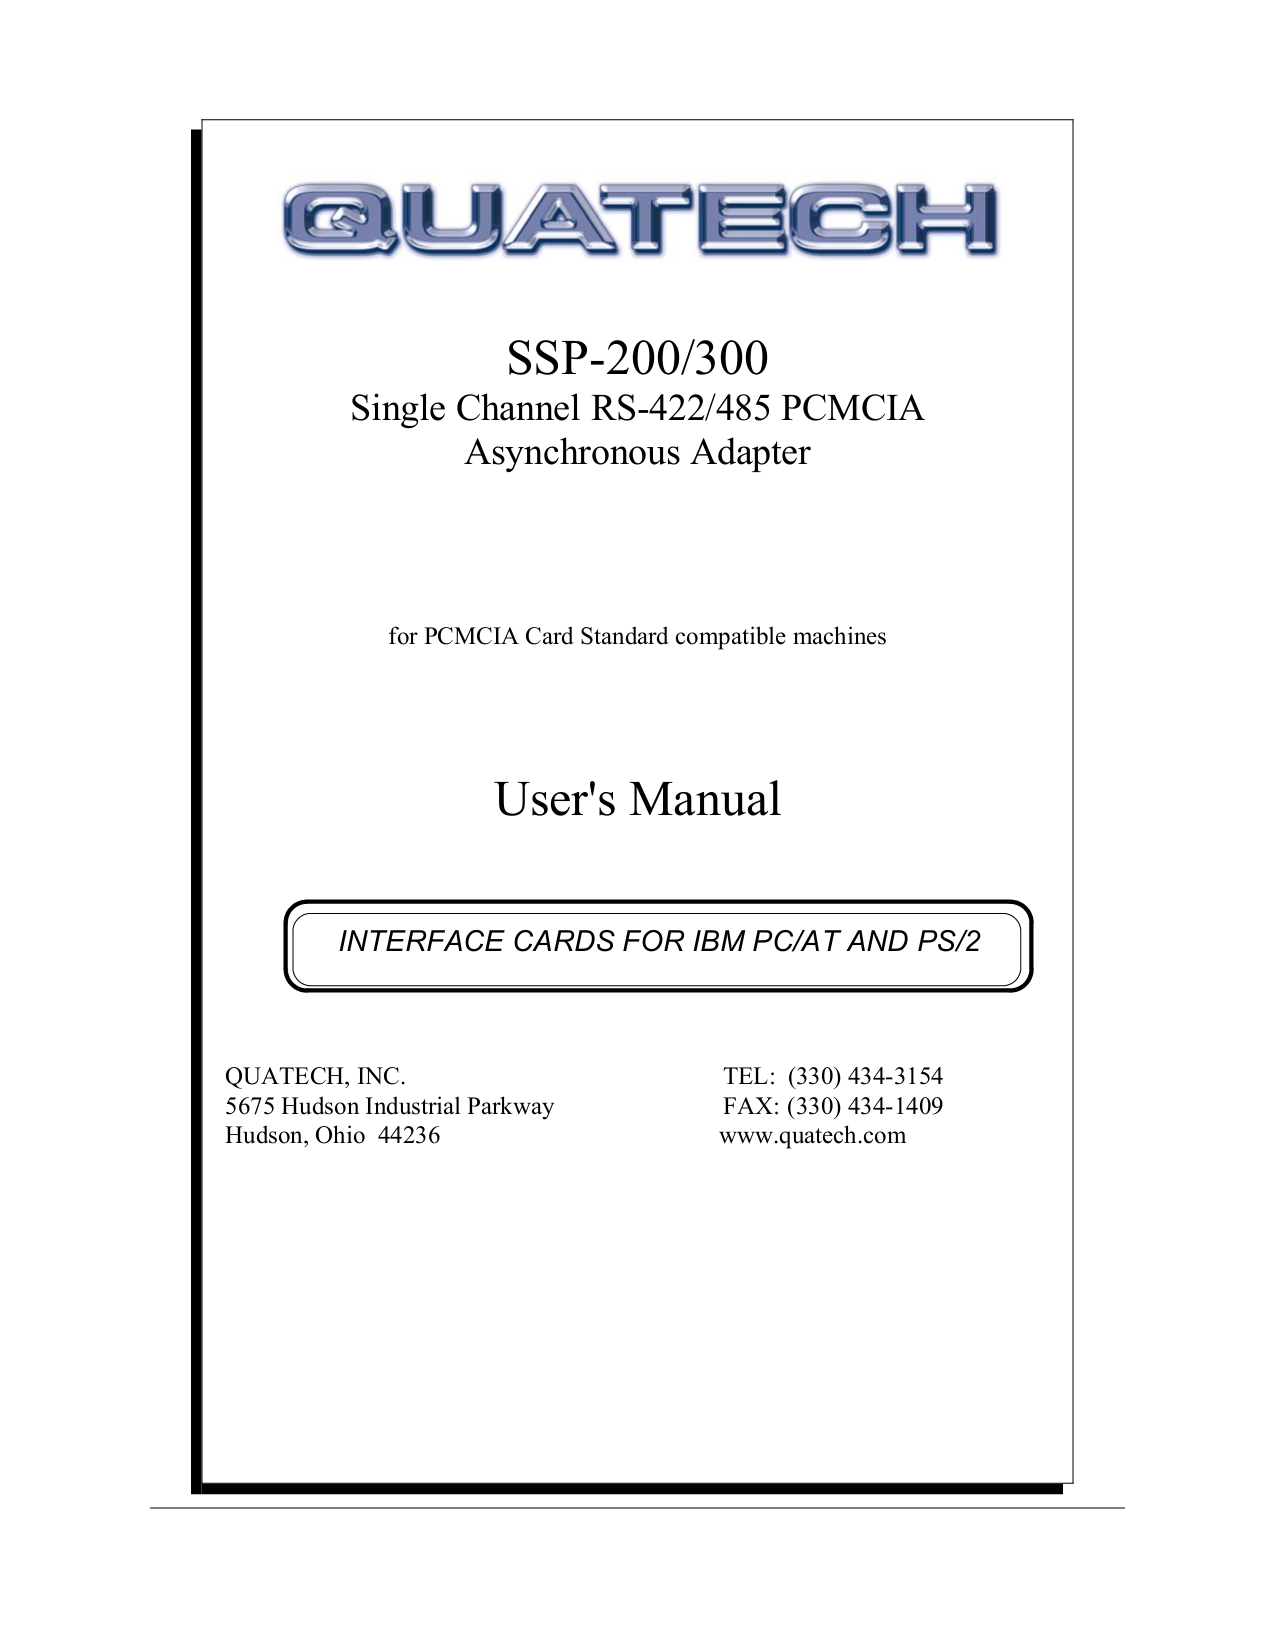 pdf for Quatech Other SSP-200 PCMCIA Cards manual